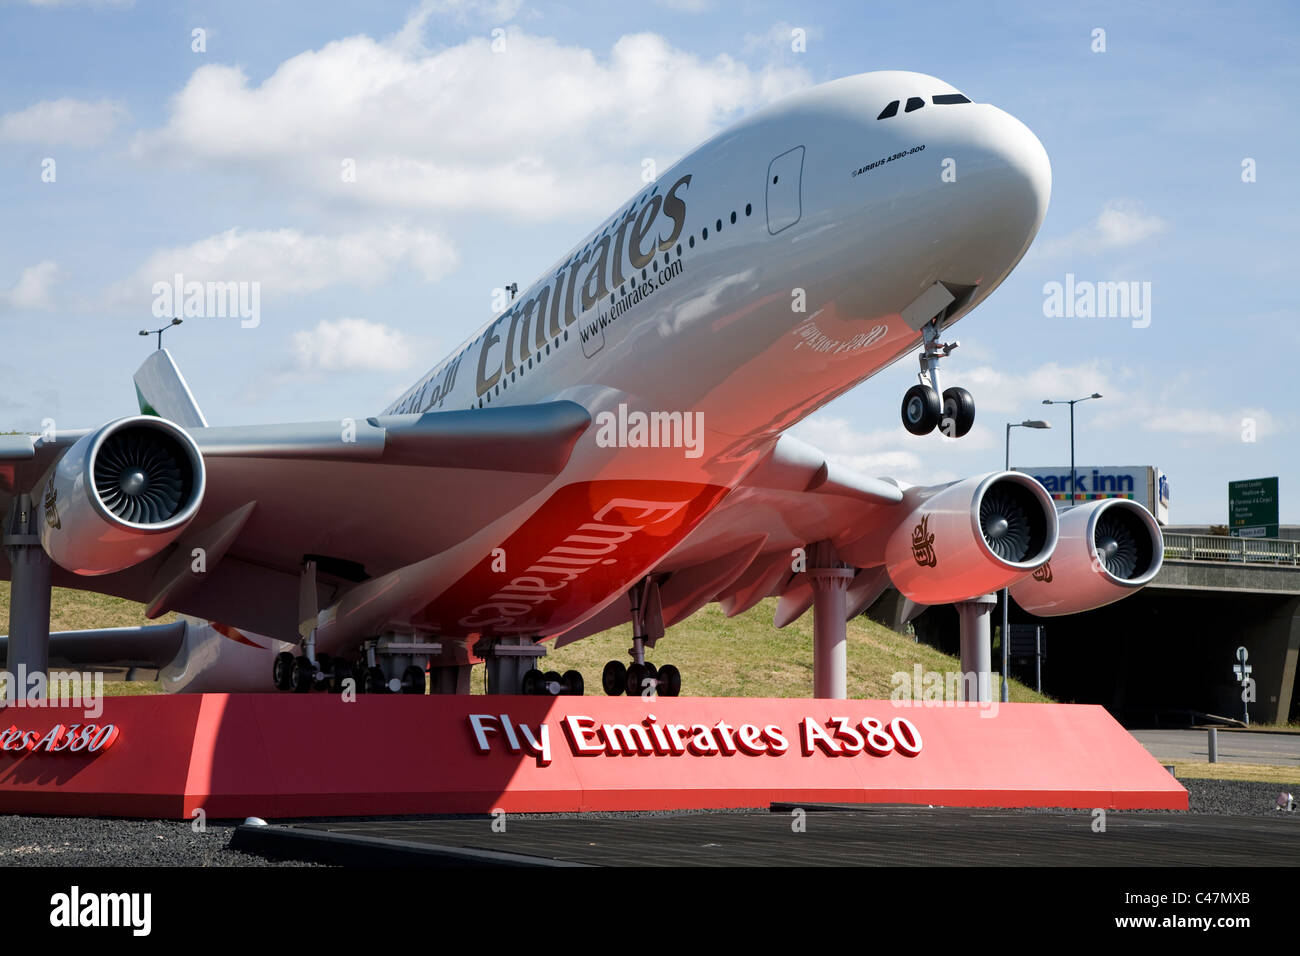 Big scale model of an Emirates Airbus A380-861 A6-EDH plane at the gateway  to London Heathrow airport near the A4 road. UK